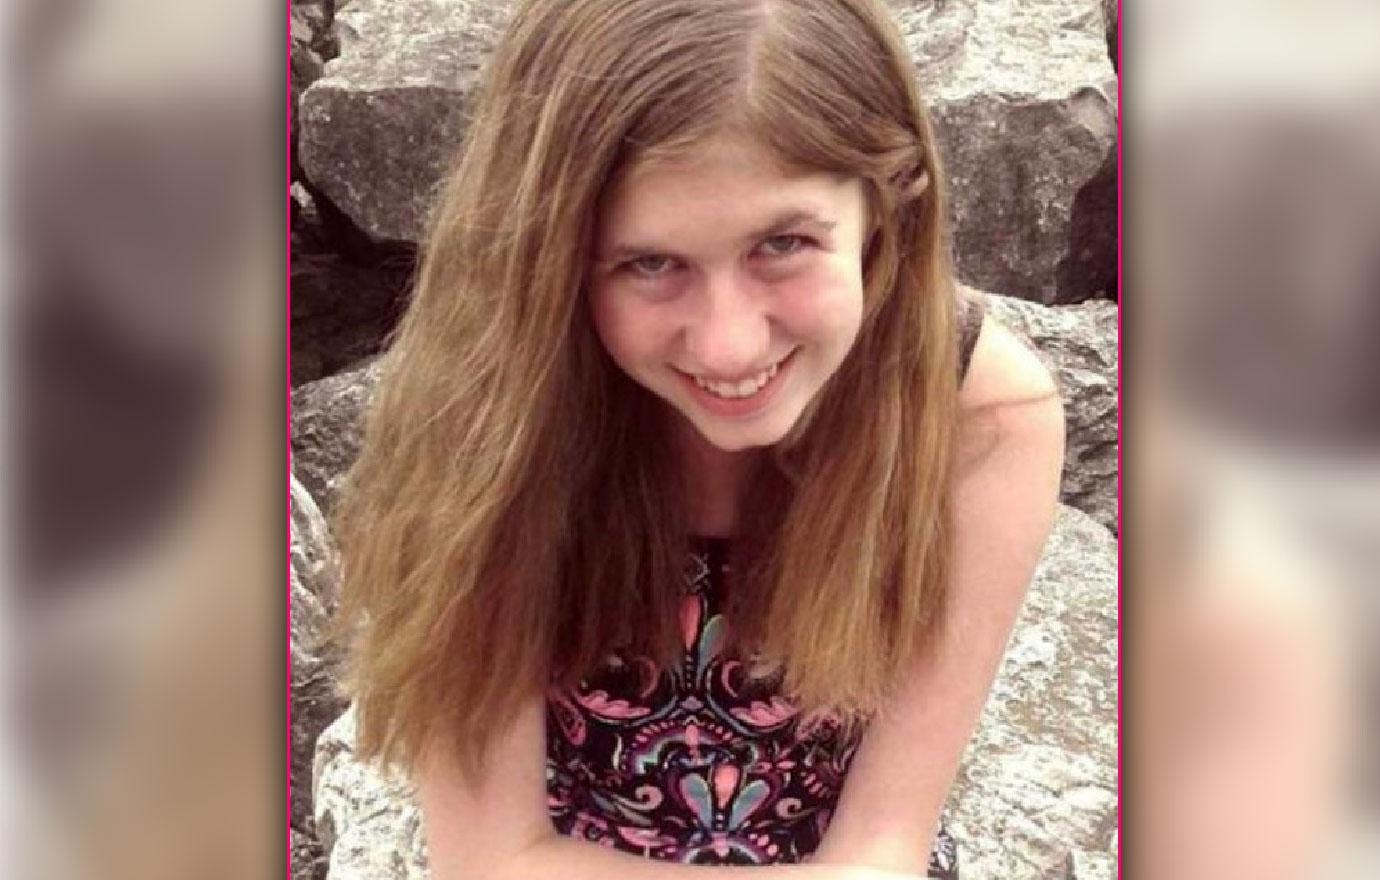 Investigators Receive Thousands Of Tips In Jayme Closs Case